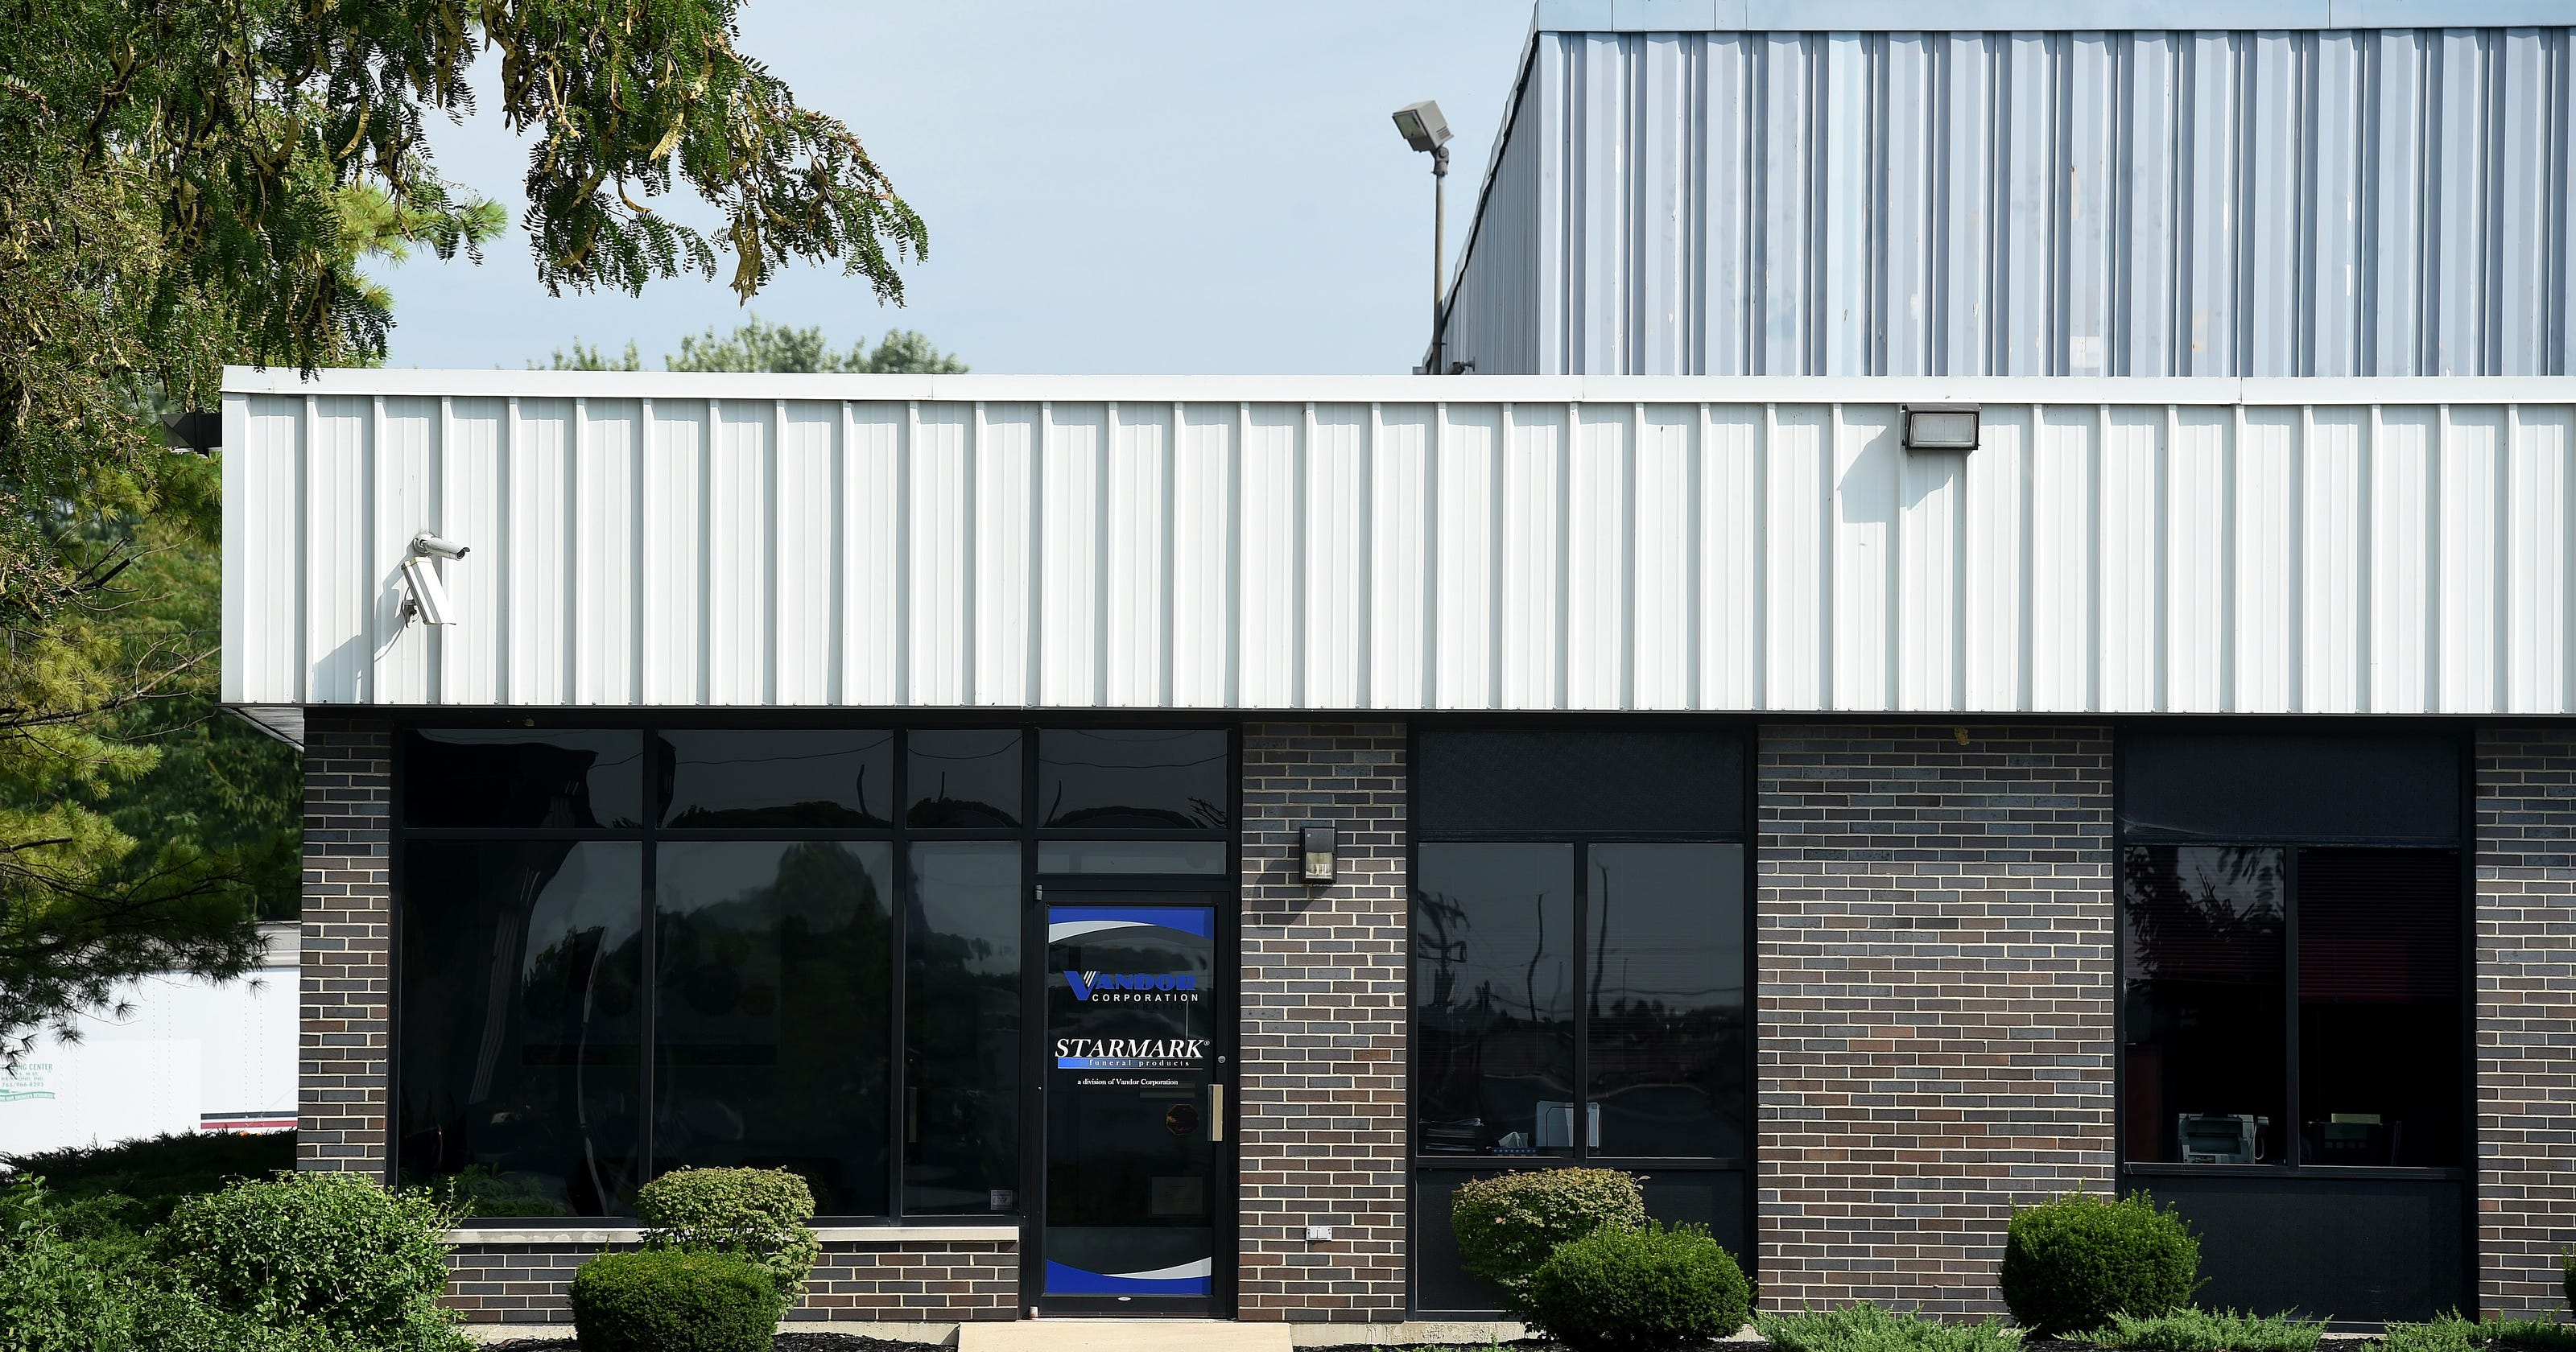 2 local plant expansions may add up to 51 jobs